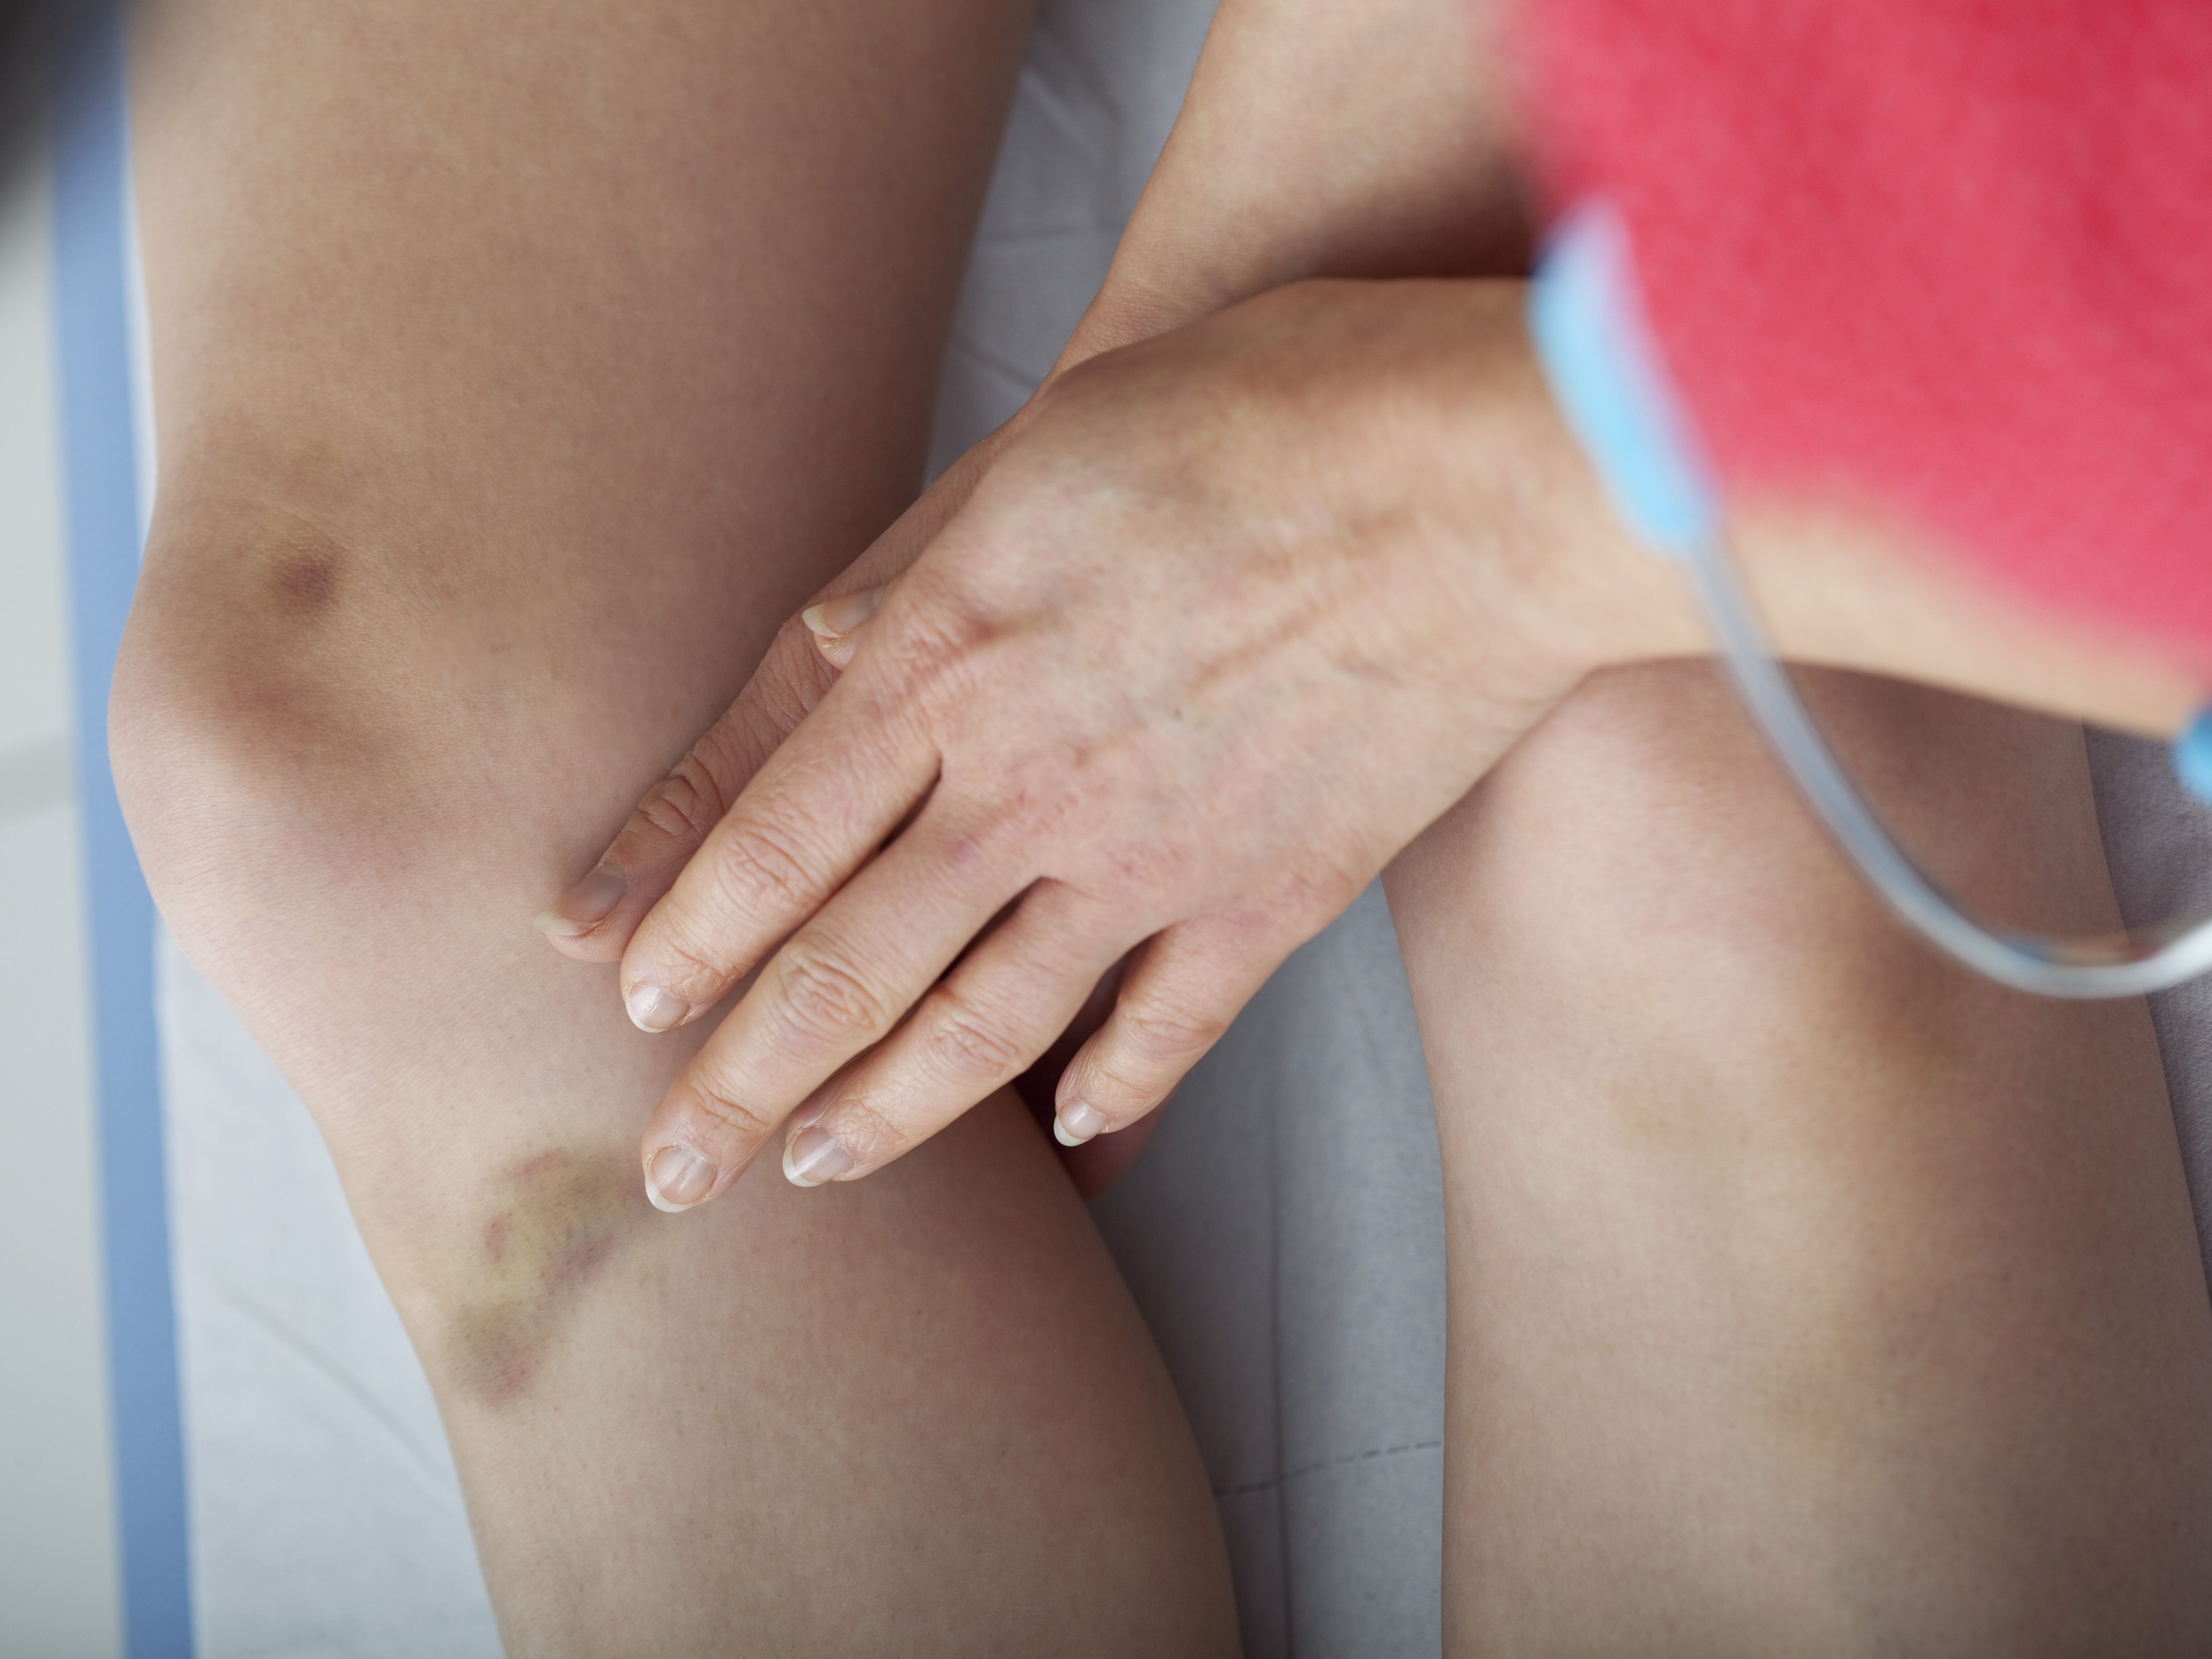 What Is the Difference Between Bruises and Hematomas?